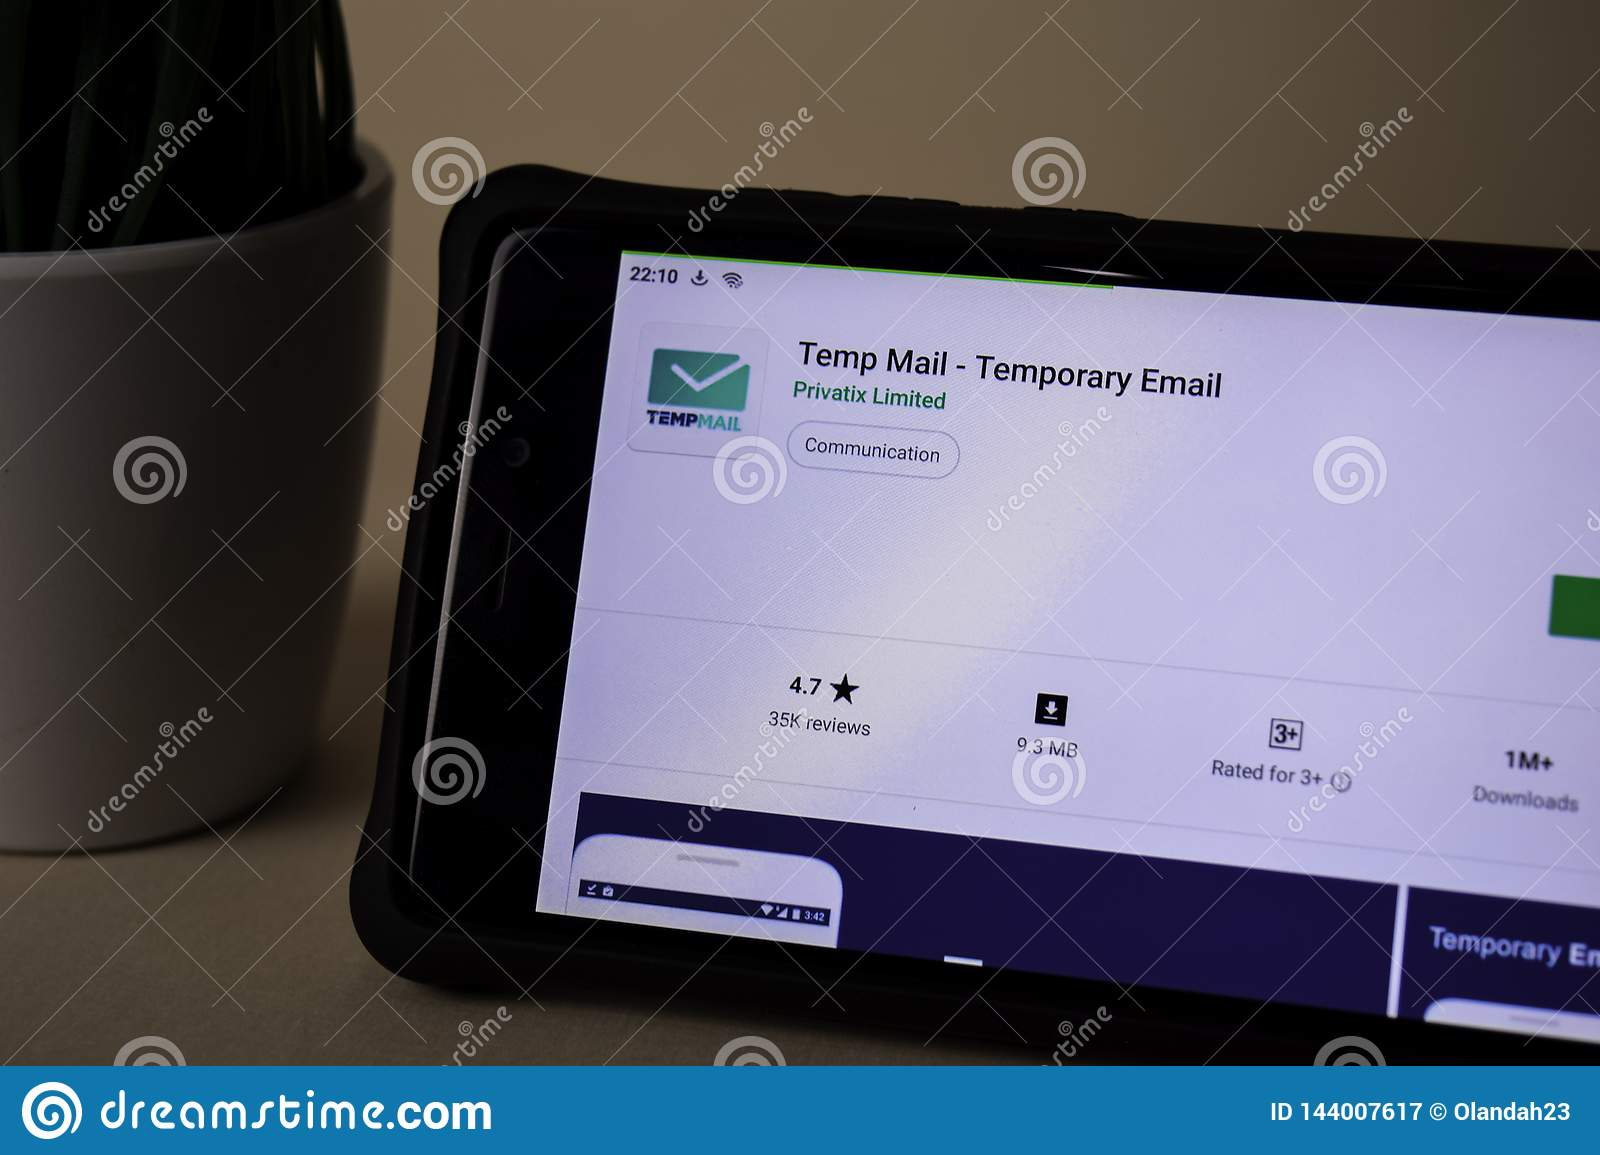 Temp Mail - Temporary Email Dev Application On Smartphone Screen